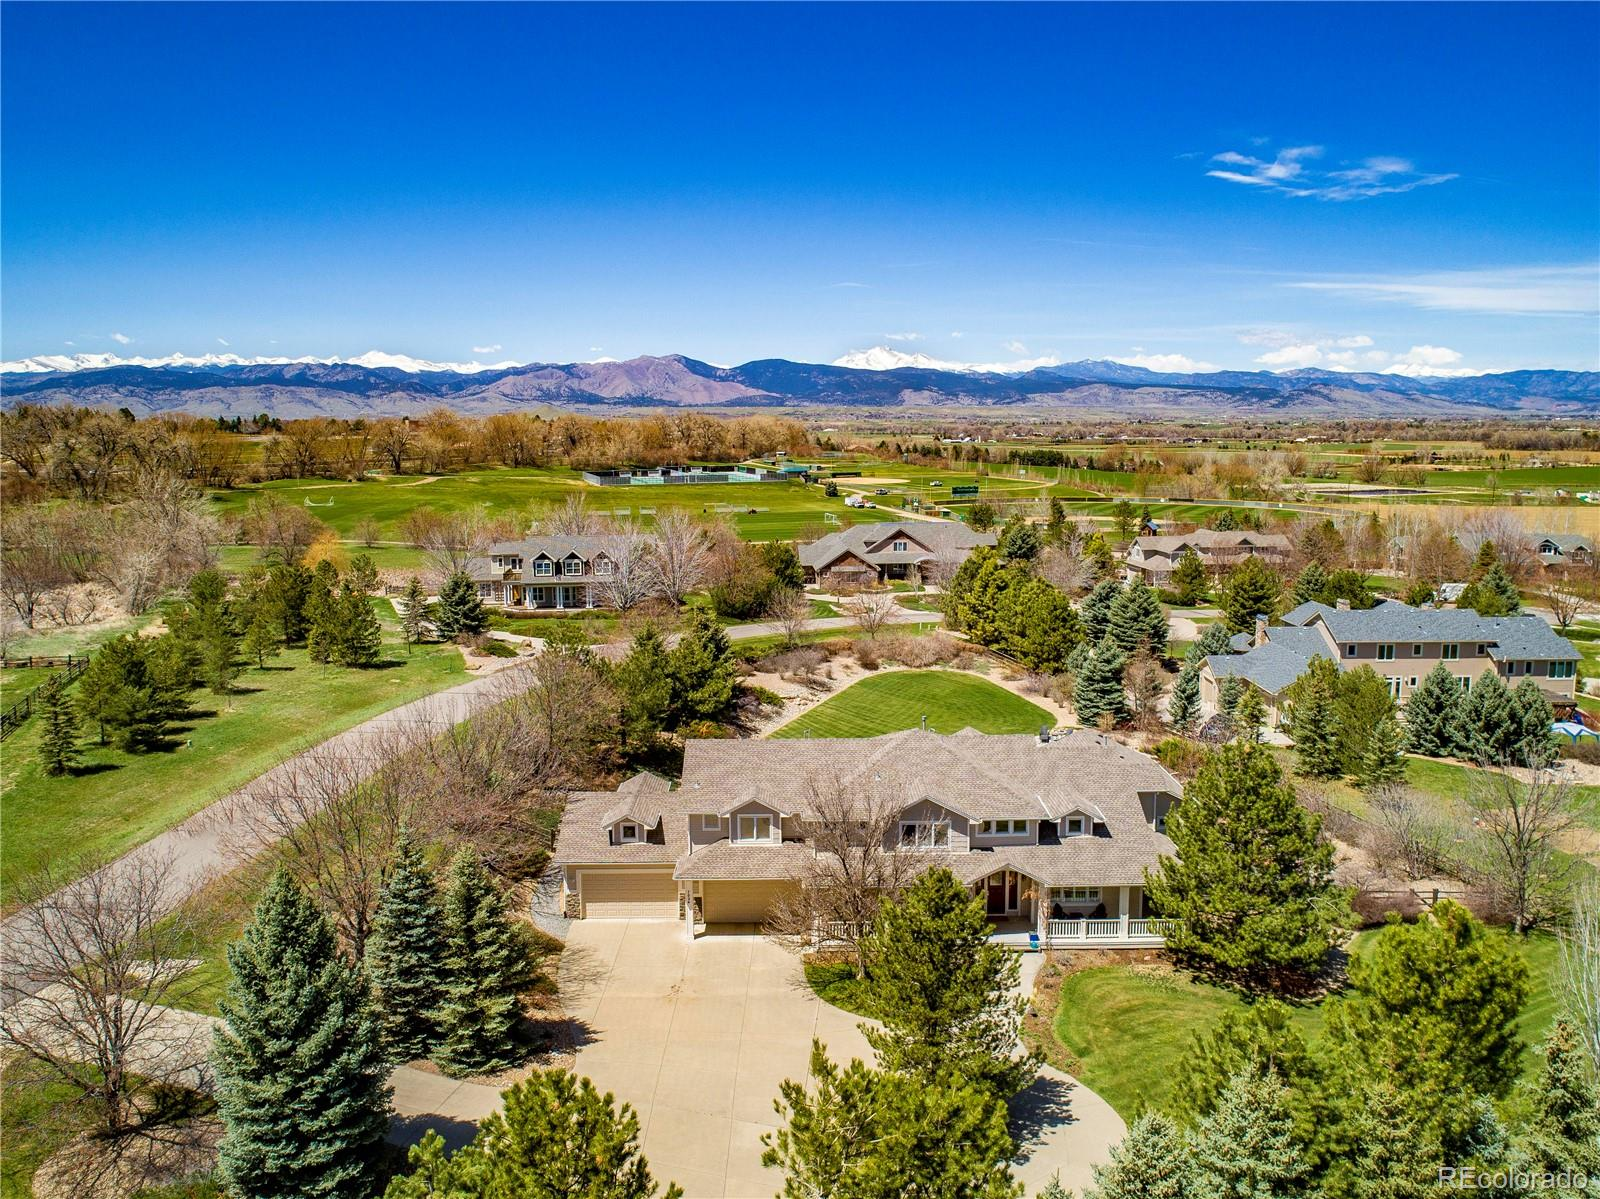 7024 Quiet Retreat Court, Niwot, CO 80503 - Niwot, CO real estate listing